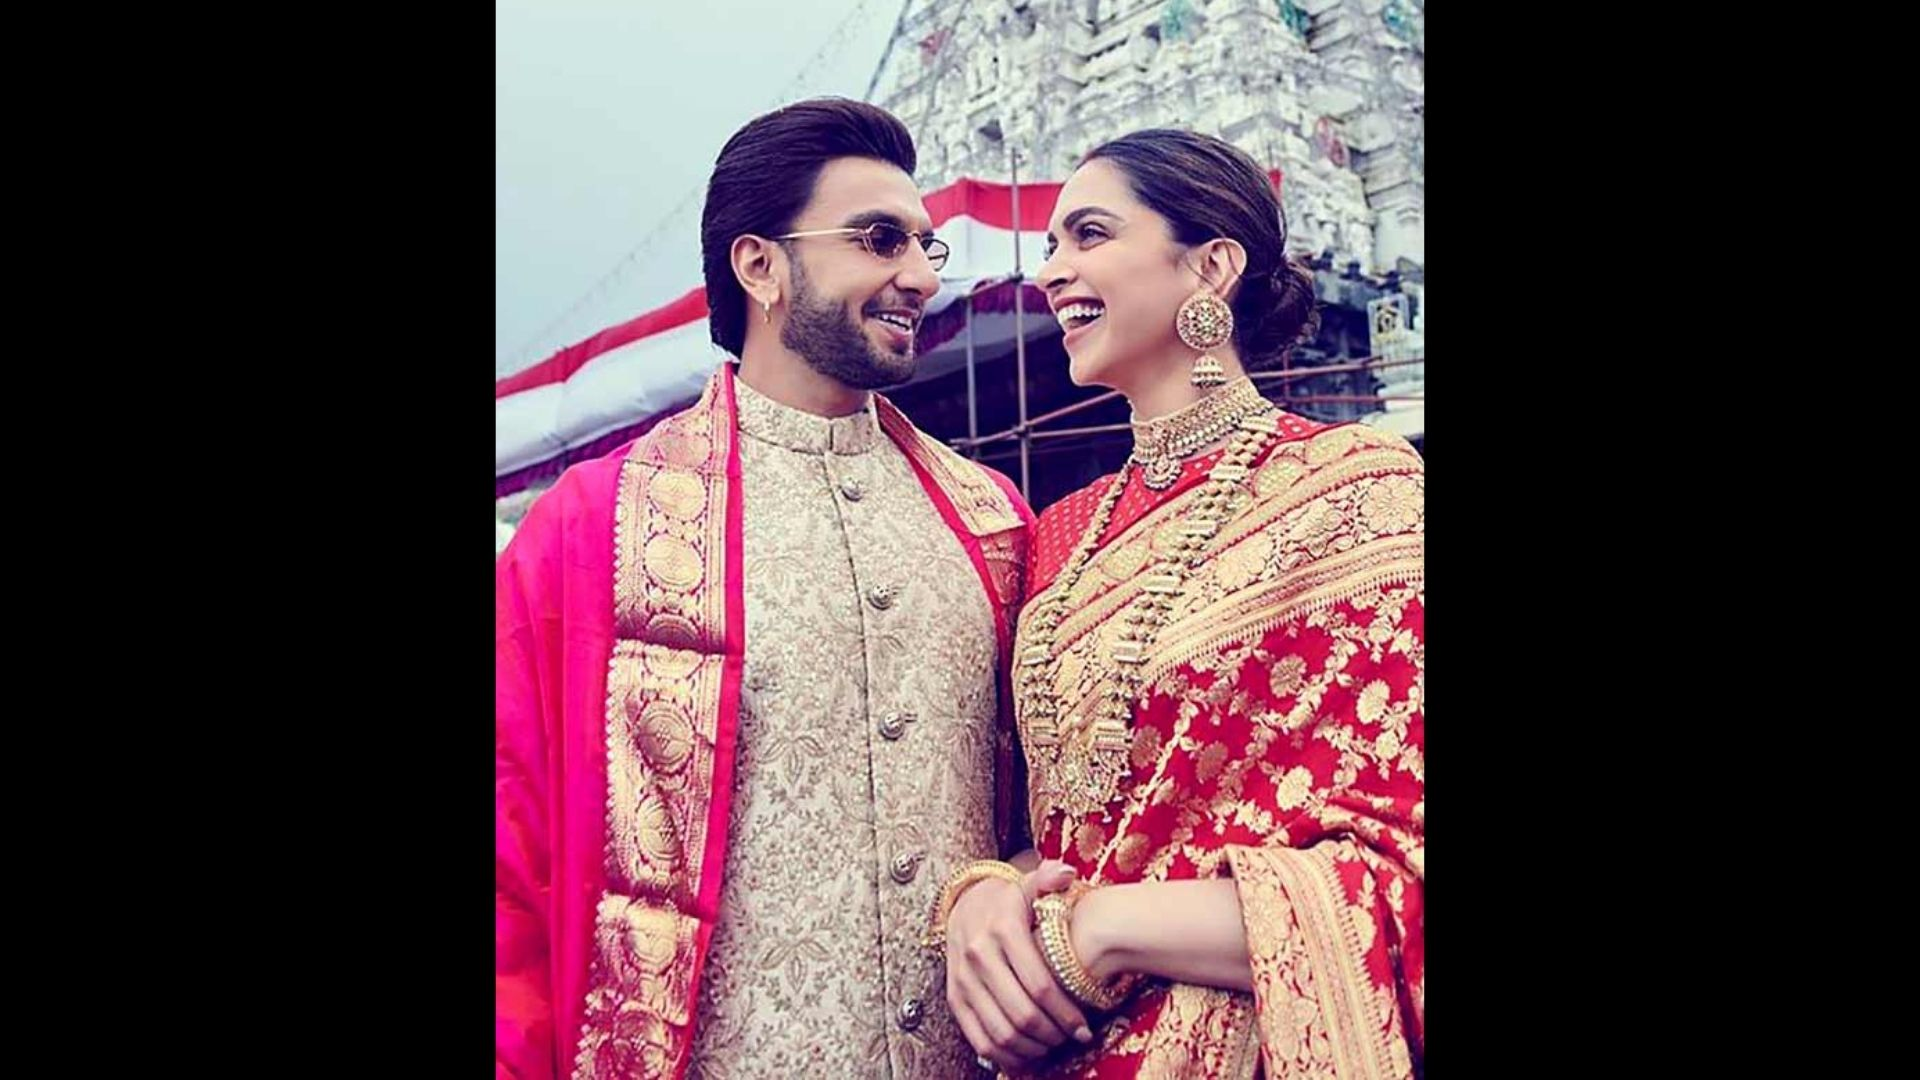 Ranveer Singh Compares His And Deepika Padukone's Love Story With A Chetan Bhagat Novel And Makes A Mushy Comment